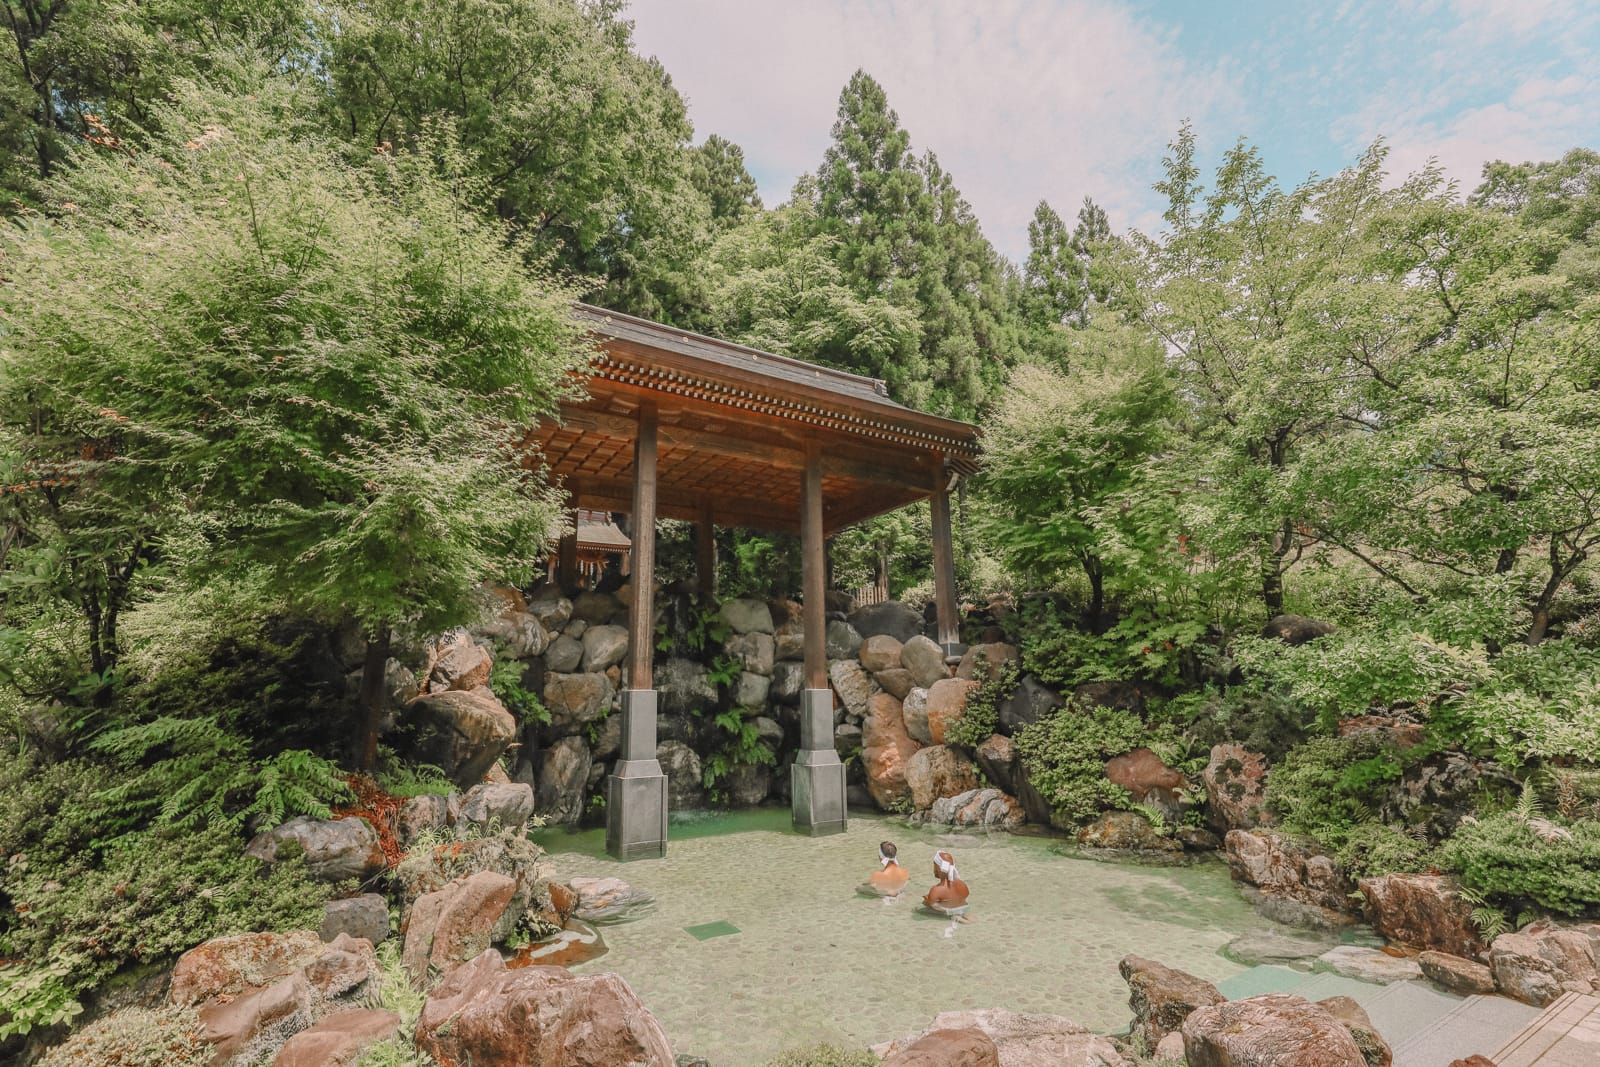 A Misogi Purification Ritual And Temples In Hakusan City - Japan (39)